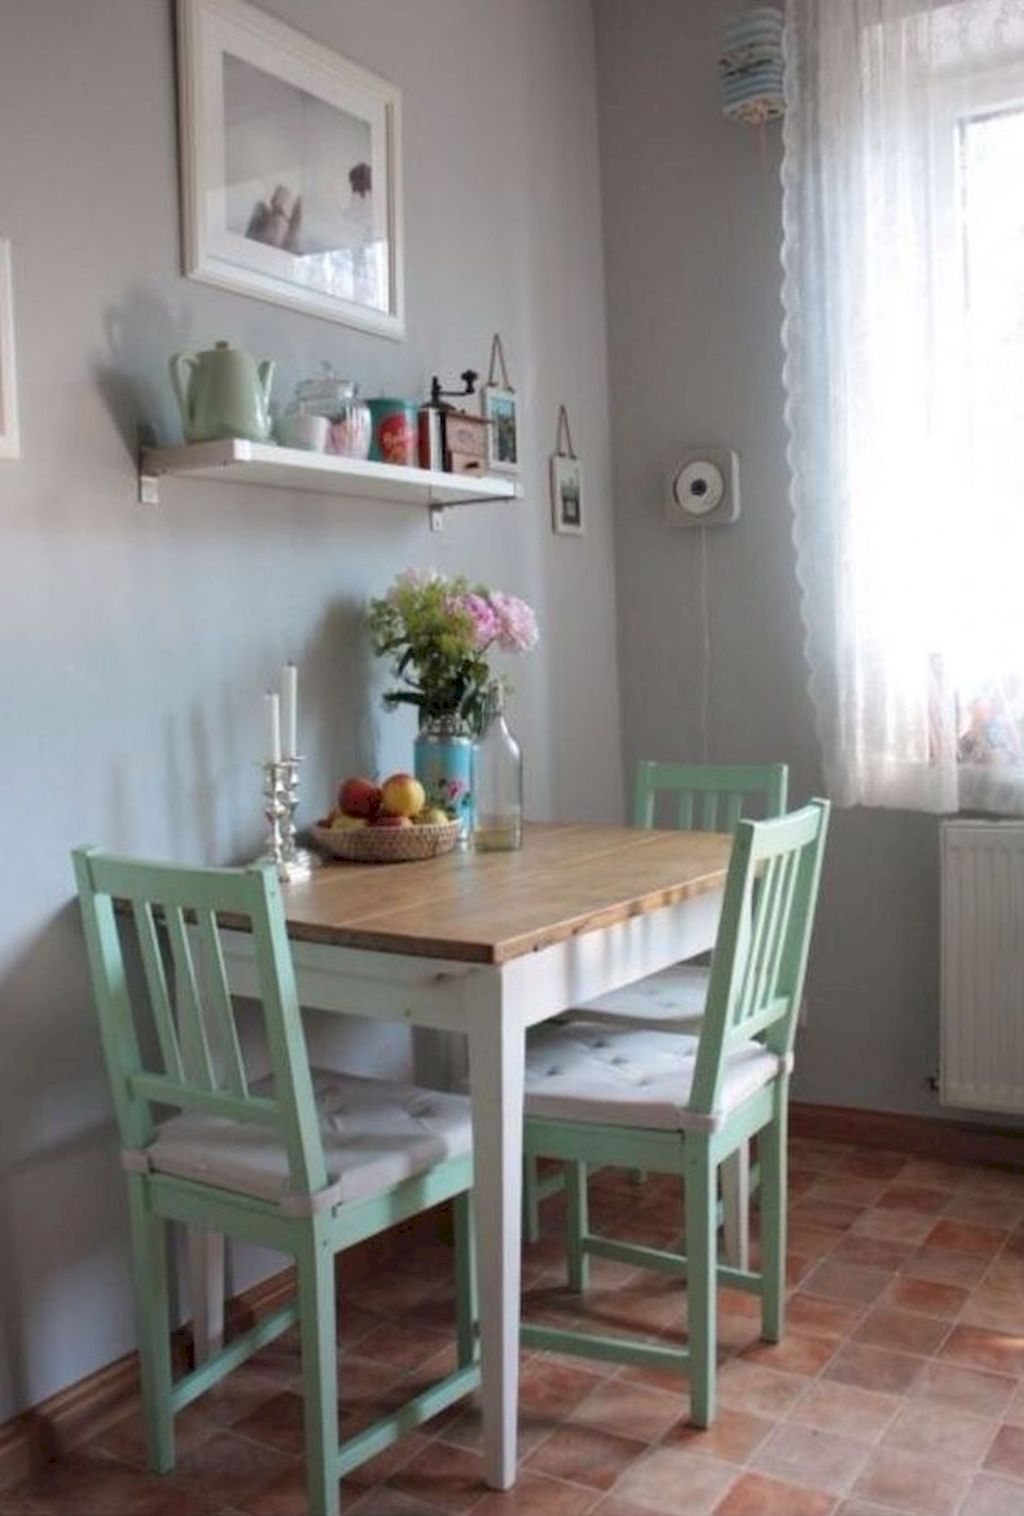 Diy Design Ideas For Small Dining Spaces 36 Home Design